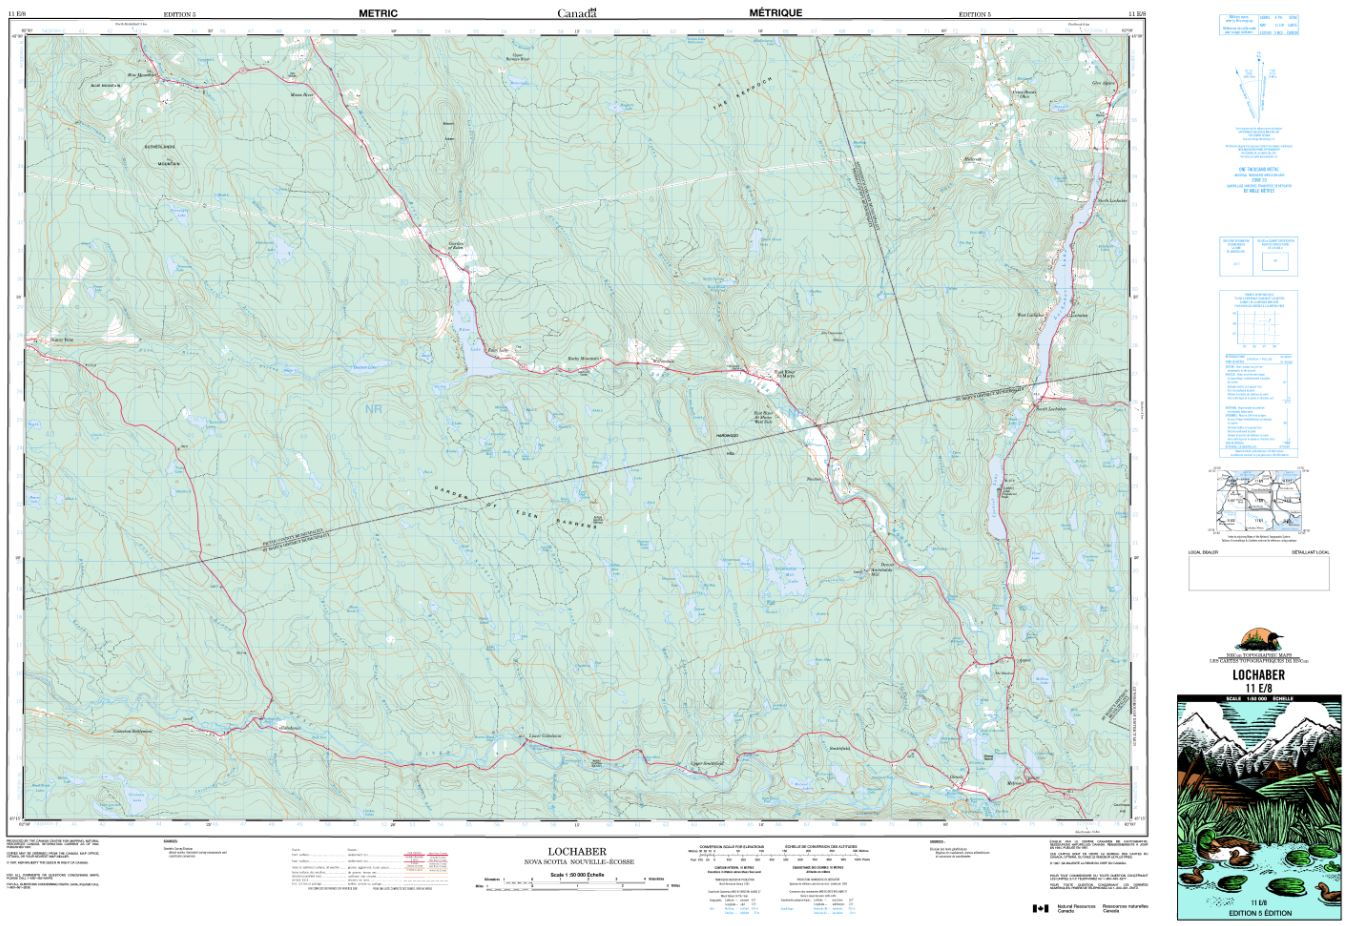 11E/08 Lochaber Topographic Map Nova Scotia